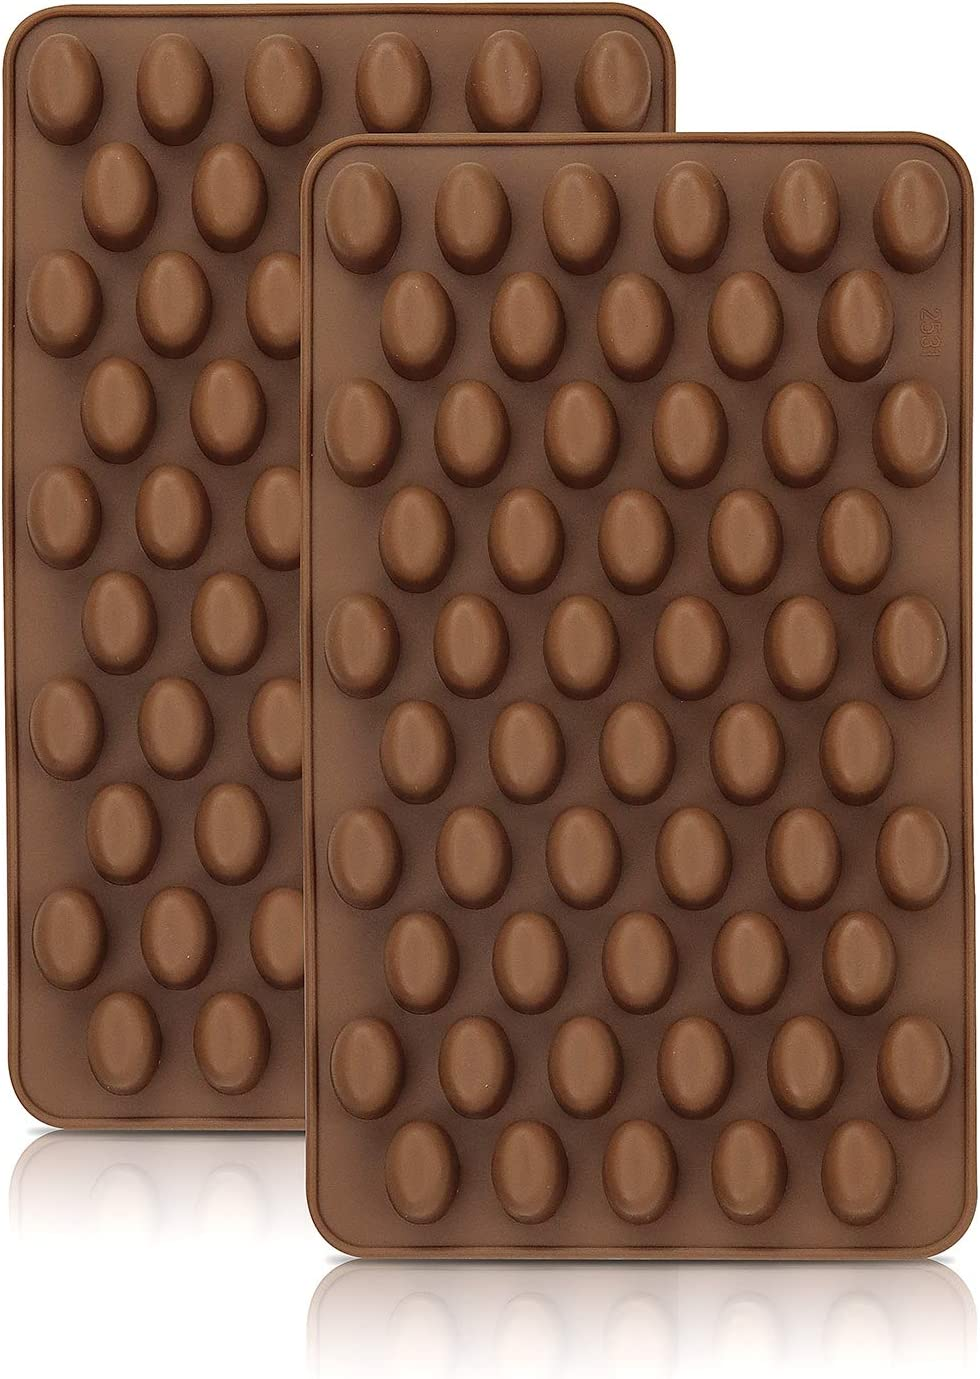 WYBG 2PCS Mini Coffee Beans Chocolate Silicon Mold 55-Cavity Silicone Candy Mold for Small Jelly Bean,Pastry,Candy,Fondant Molds, Baking Mold DIY Cake Decorating.